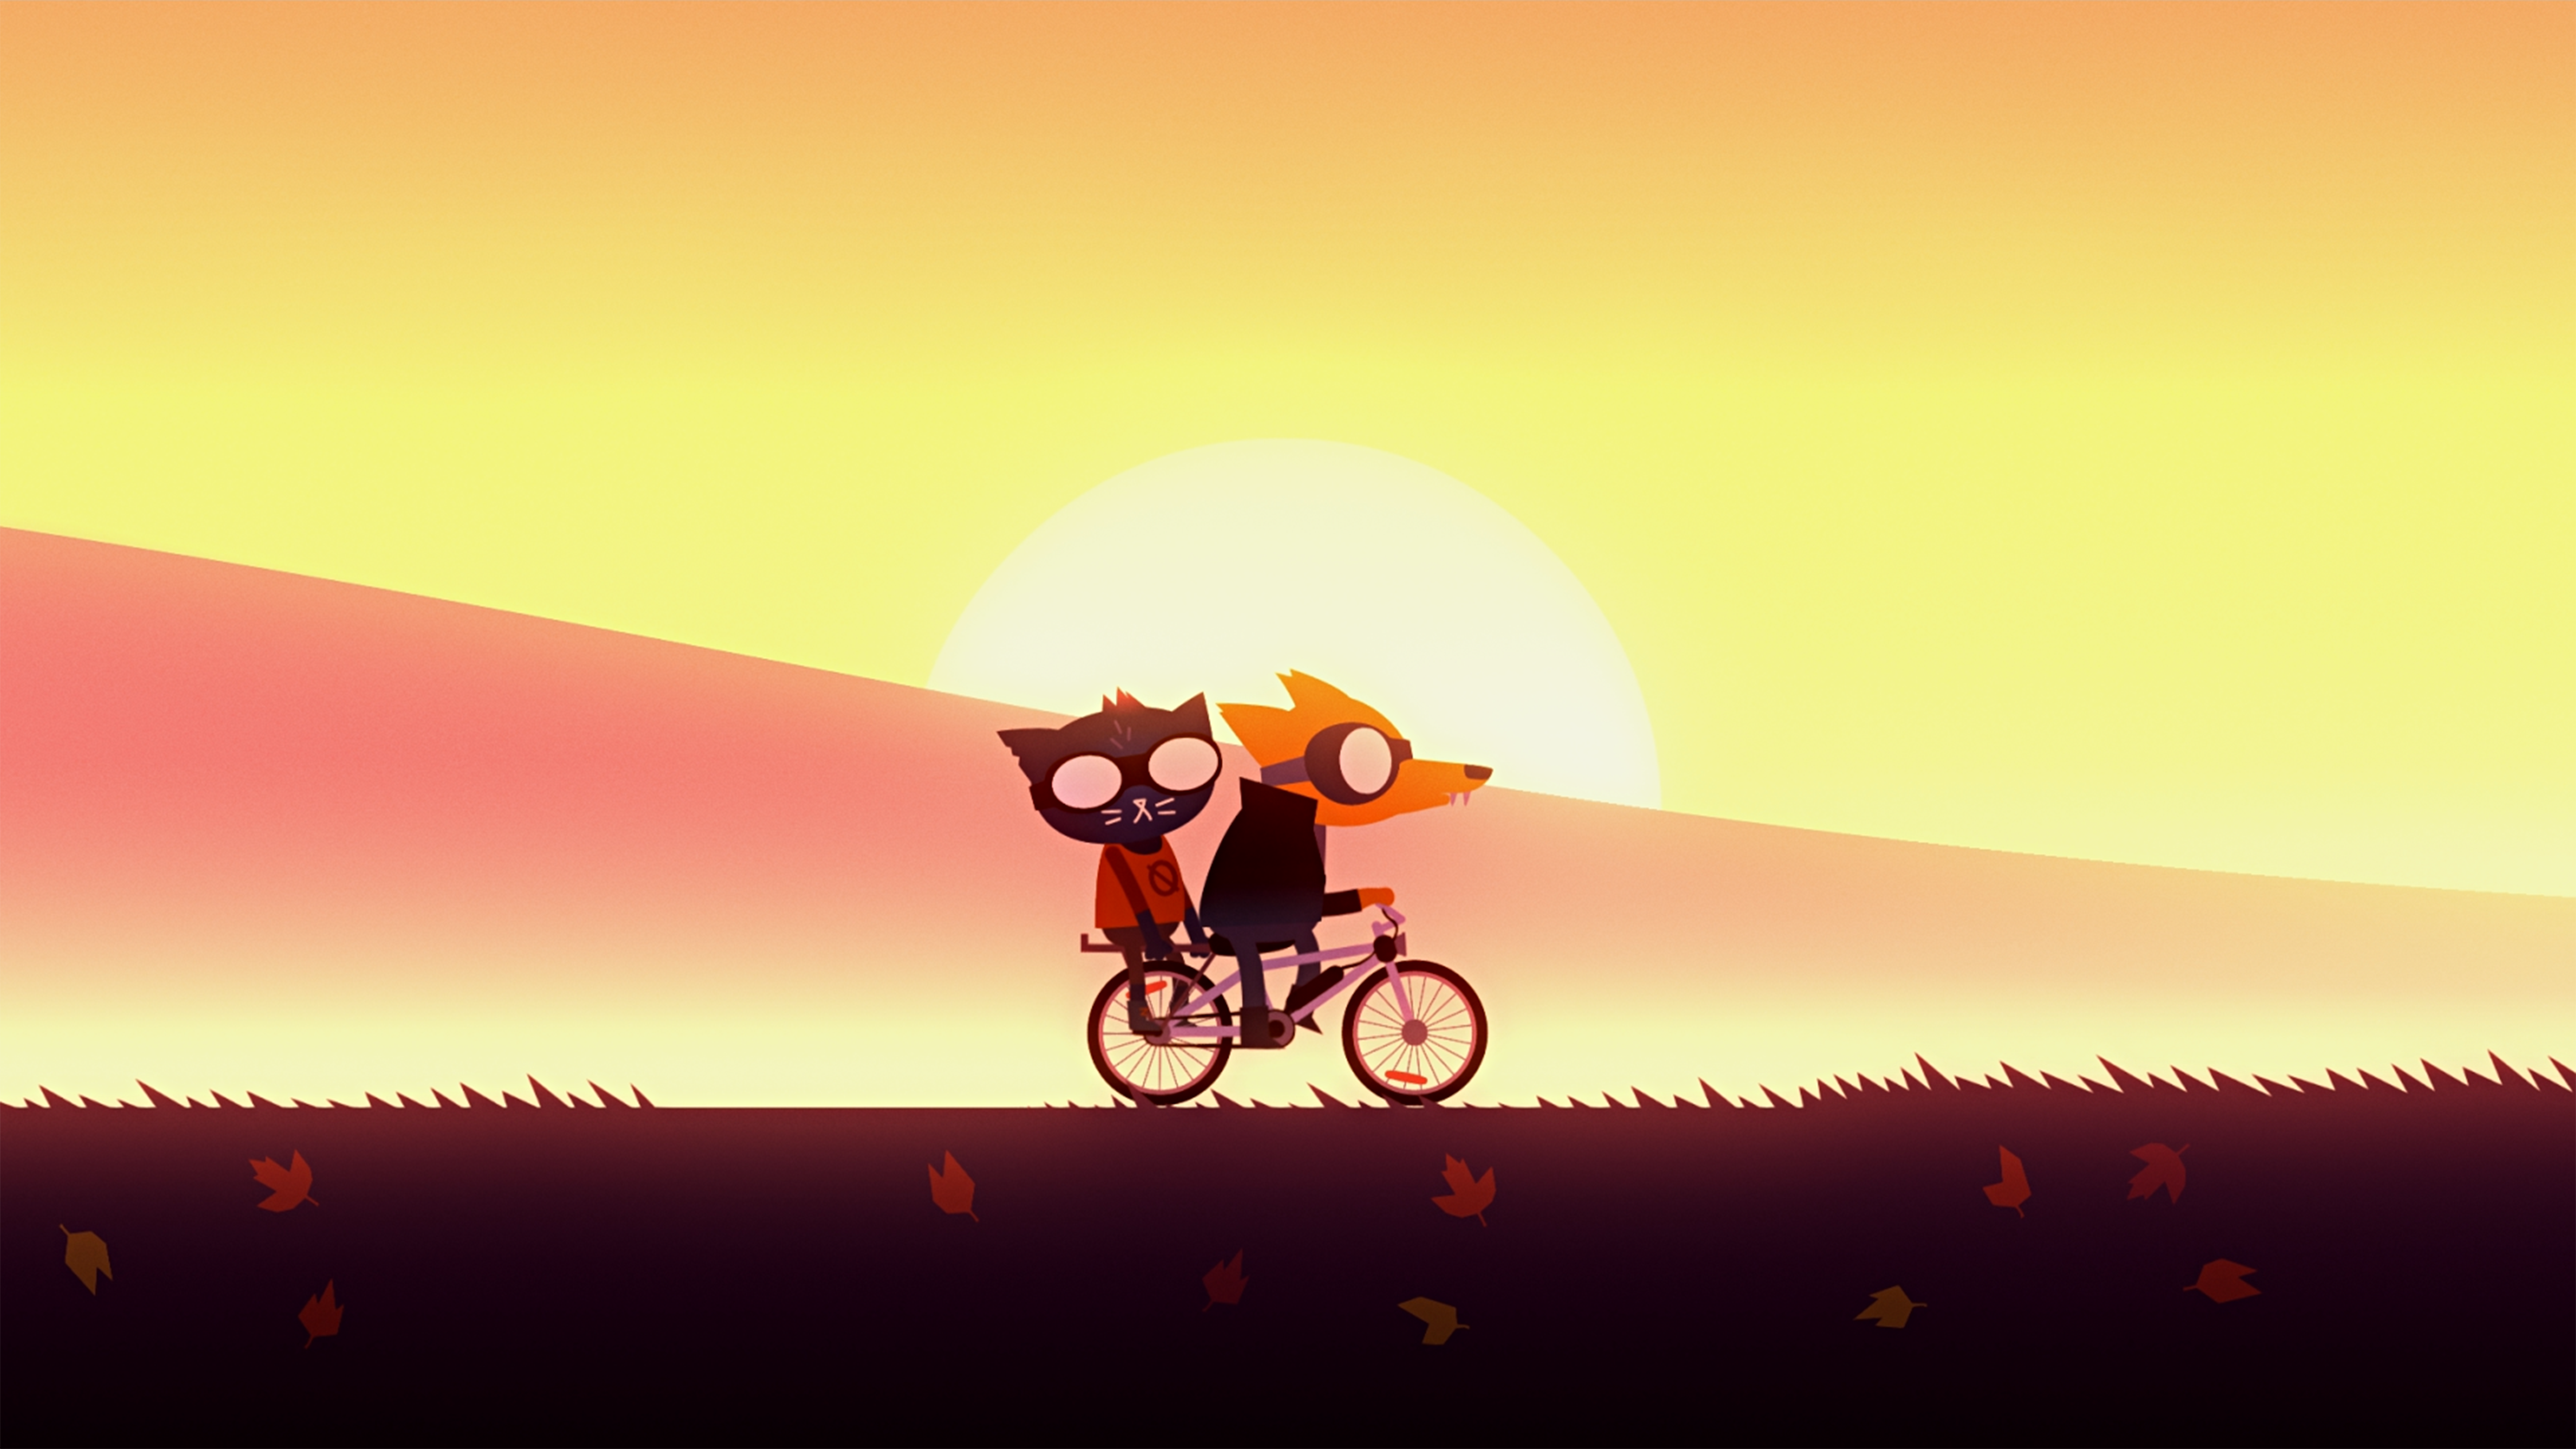 Night in the Woods, an indie video game by Infinite Fall, is currently on sale in Steam.